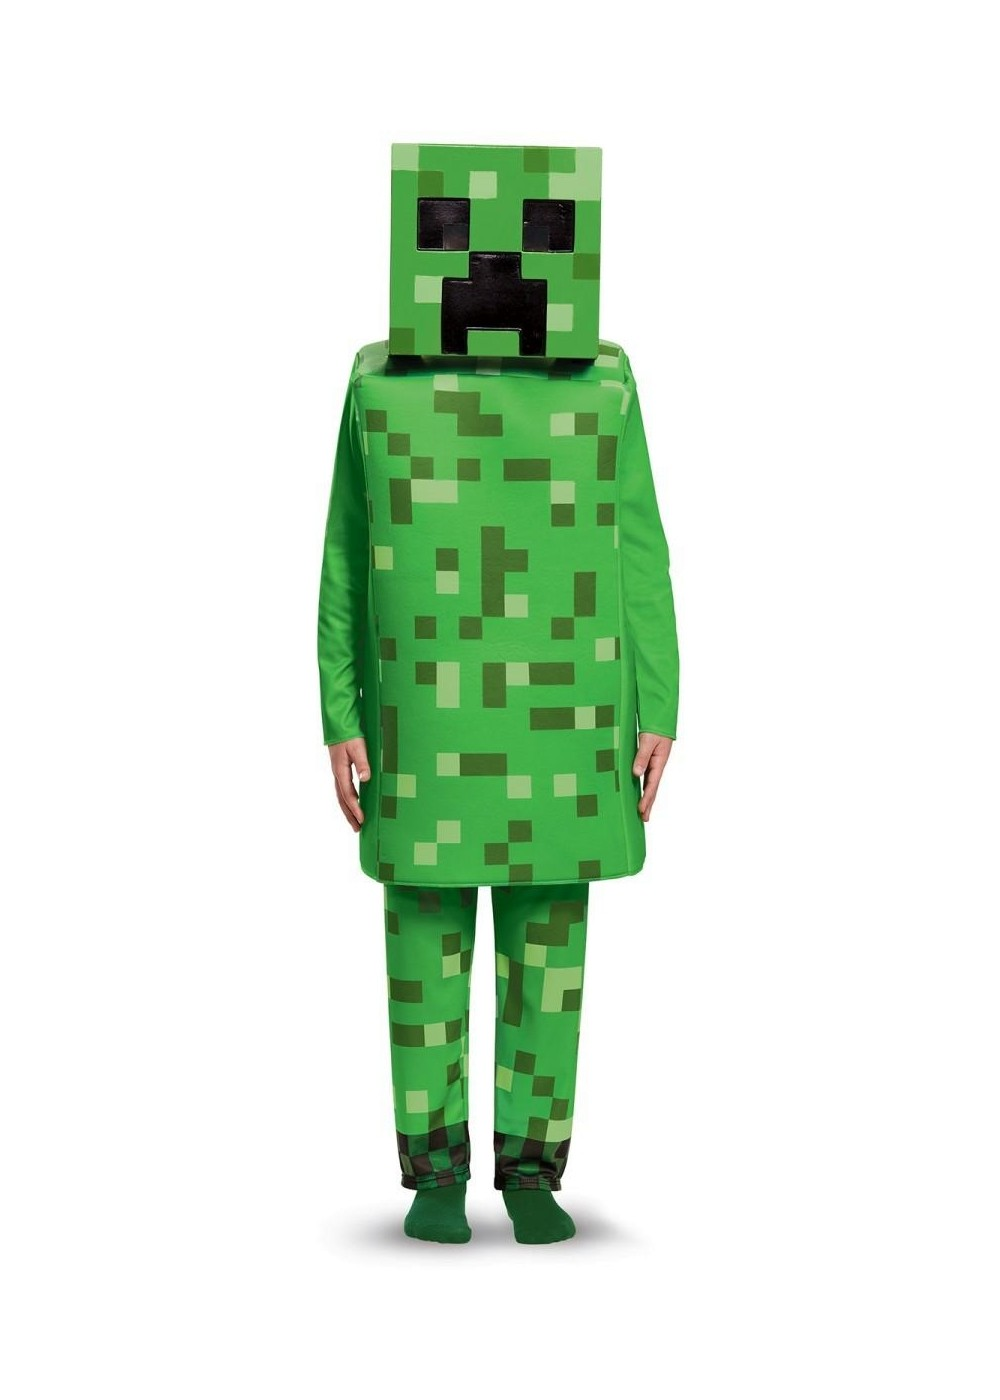 Boys Minecraft Green Creeper Costume